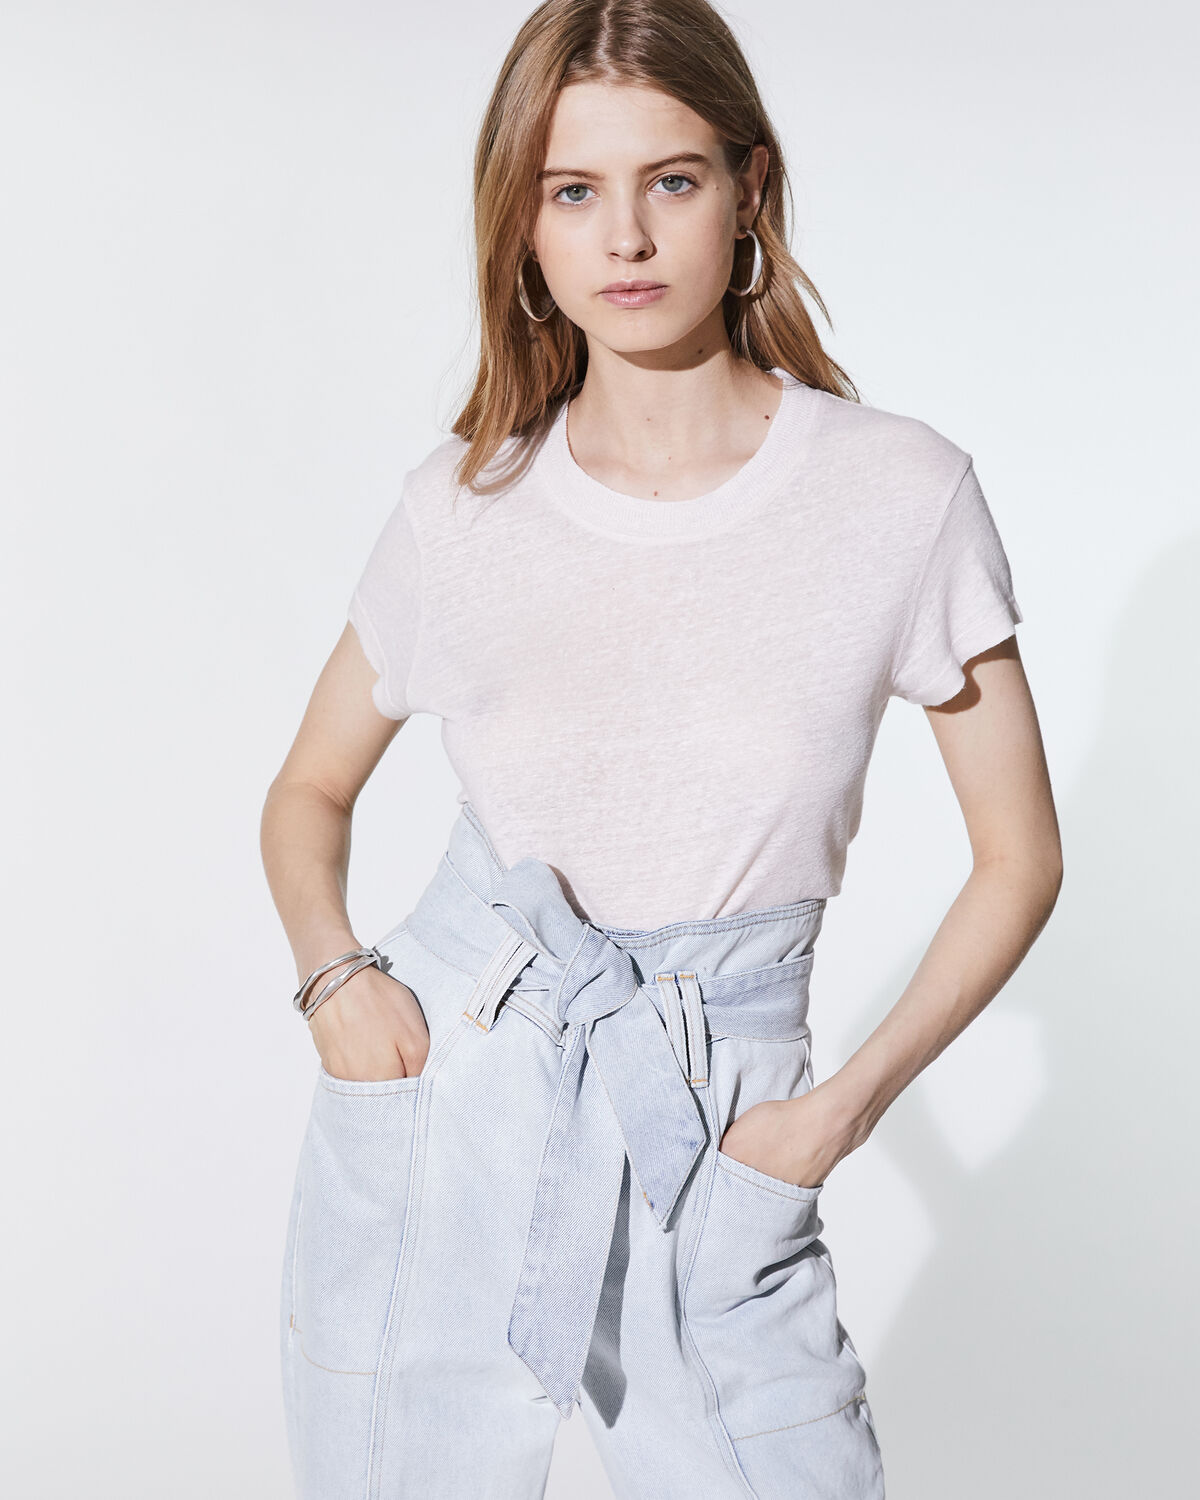 Third T-Shirt Near White by IRO Paris